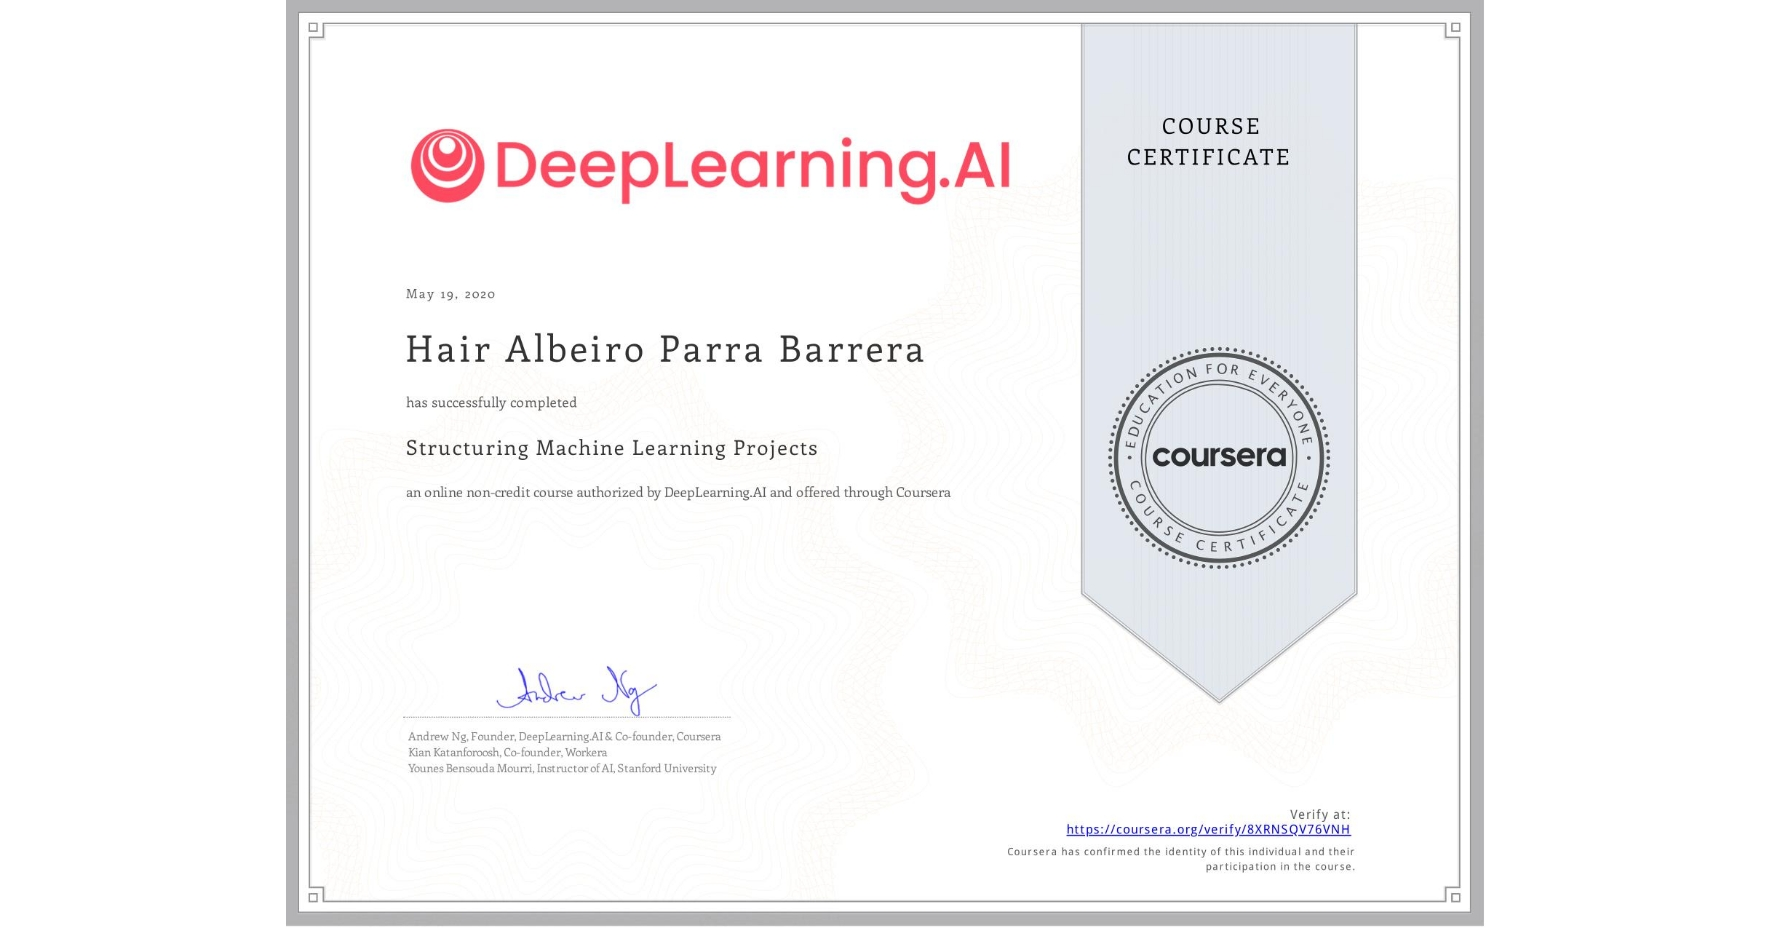 View certificate for Hair Albeiro Parra Barrera, Structuring Machine Learning Projects, an online non-credit course authorized by DeepLearning.AI and offered through Coursera